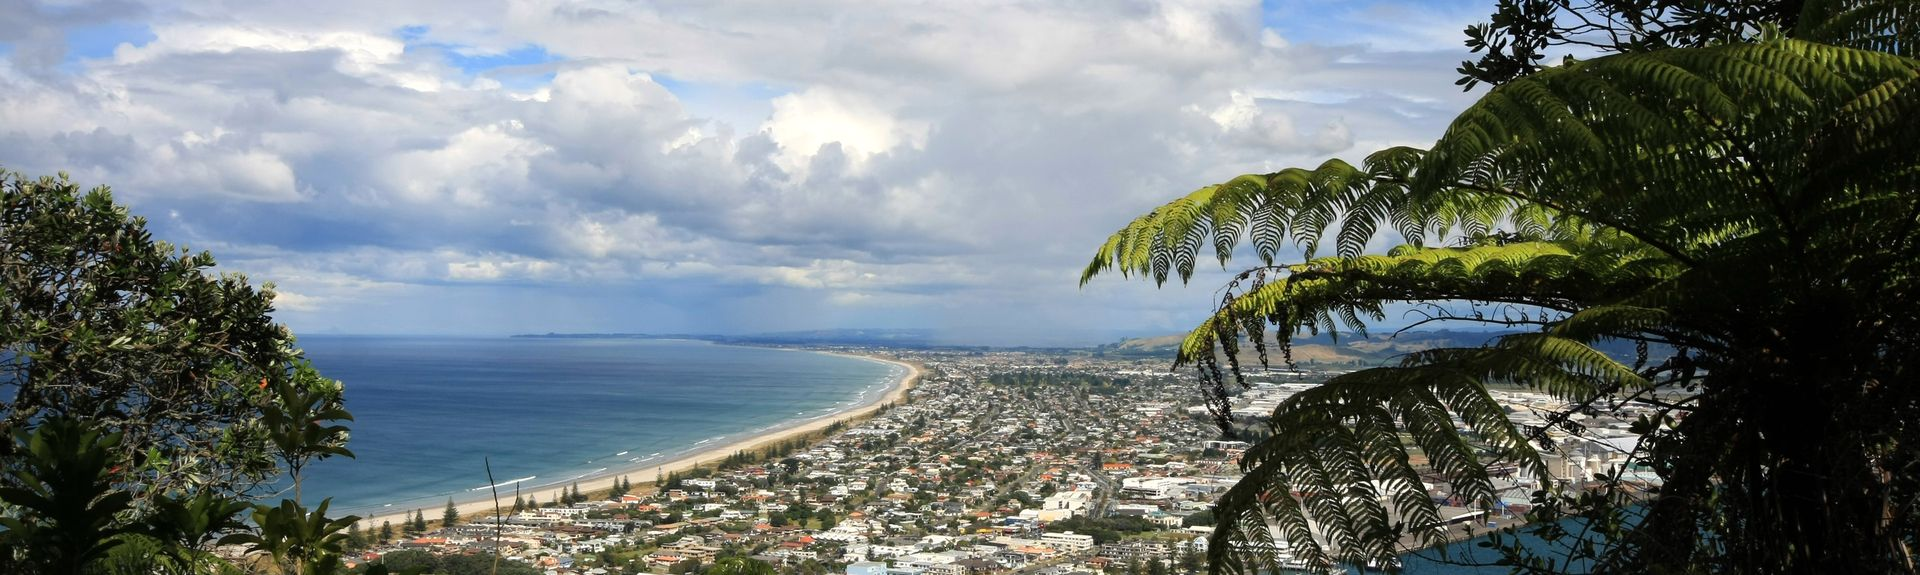 Mount Maunganui, Tauranga City, Bay of Plenty, New Zealand